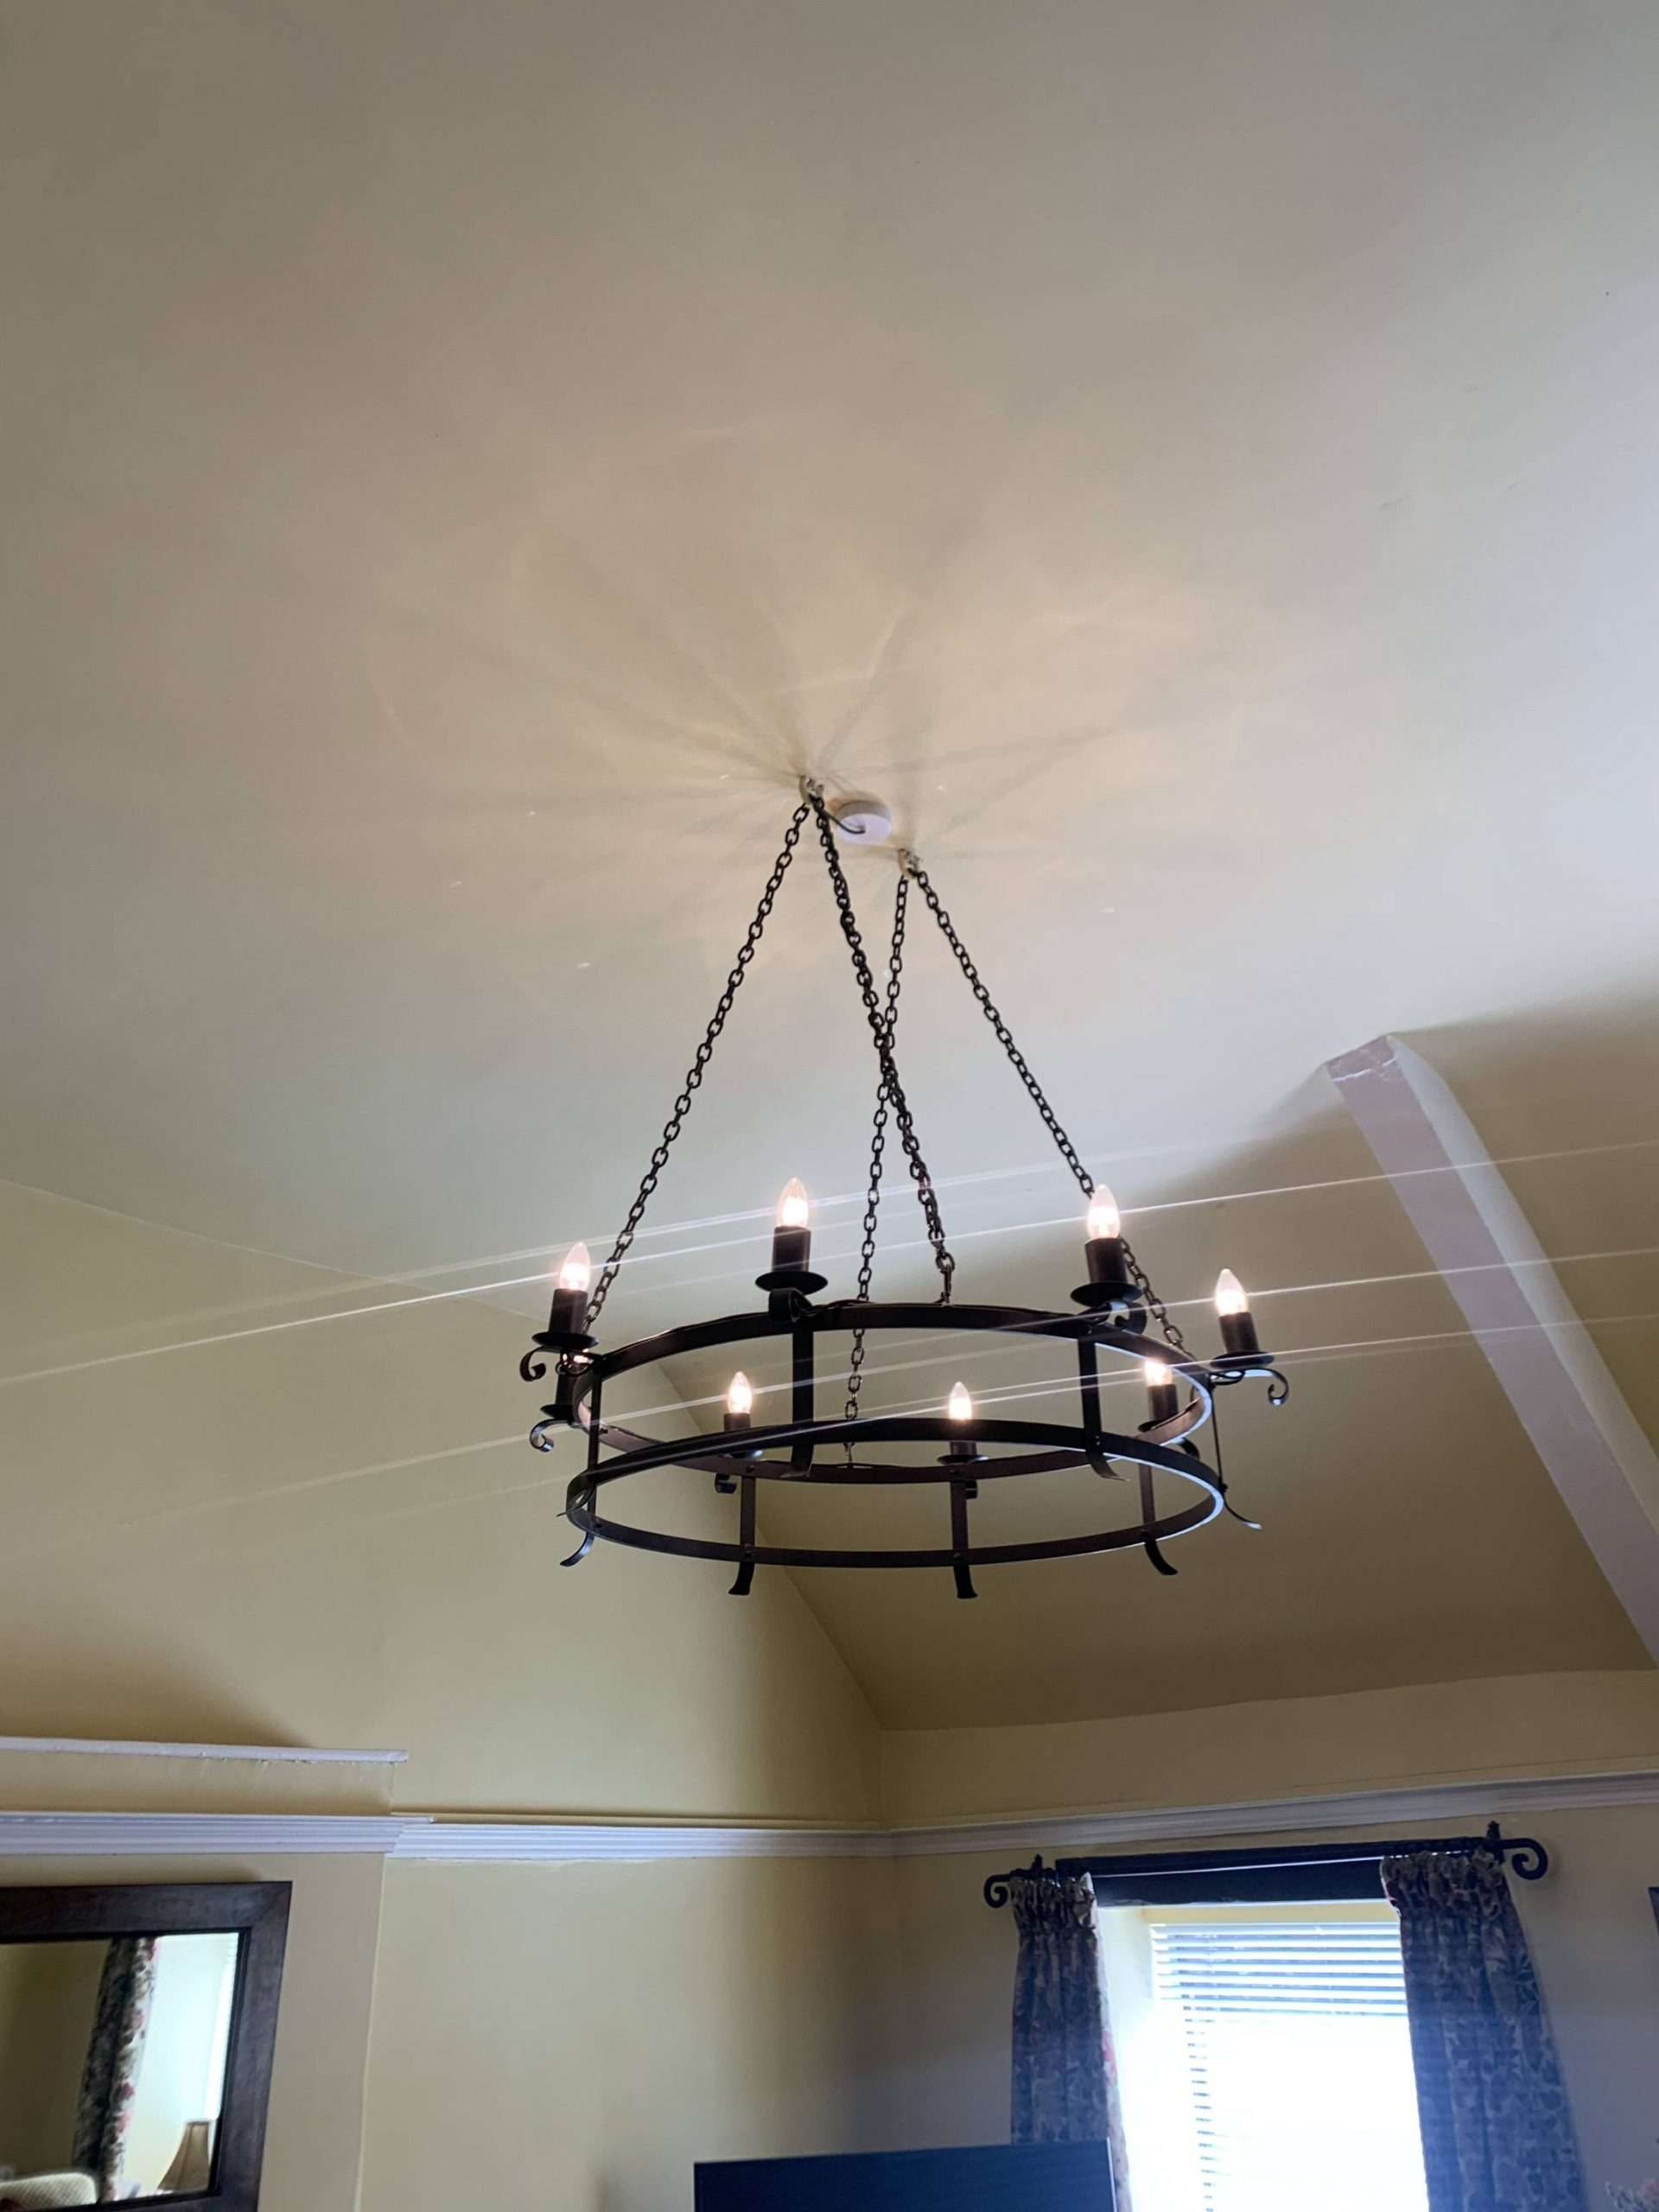 Decorative Light Installer Bristol